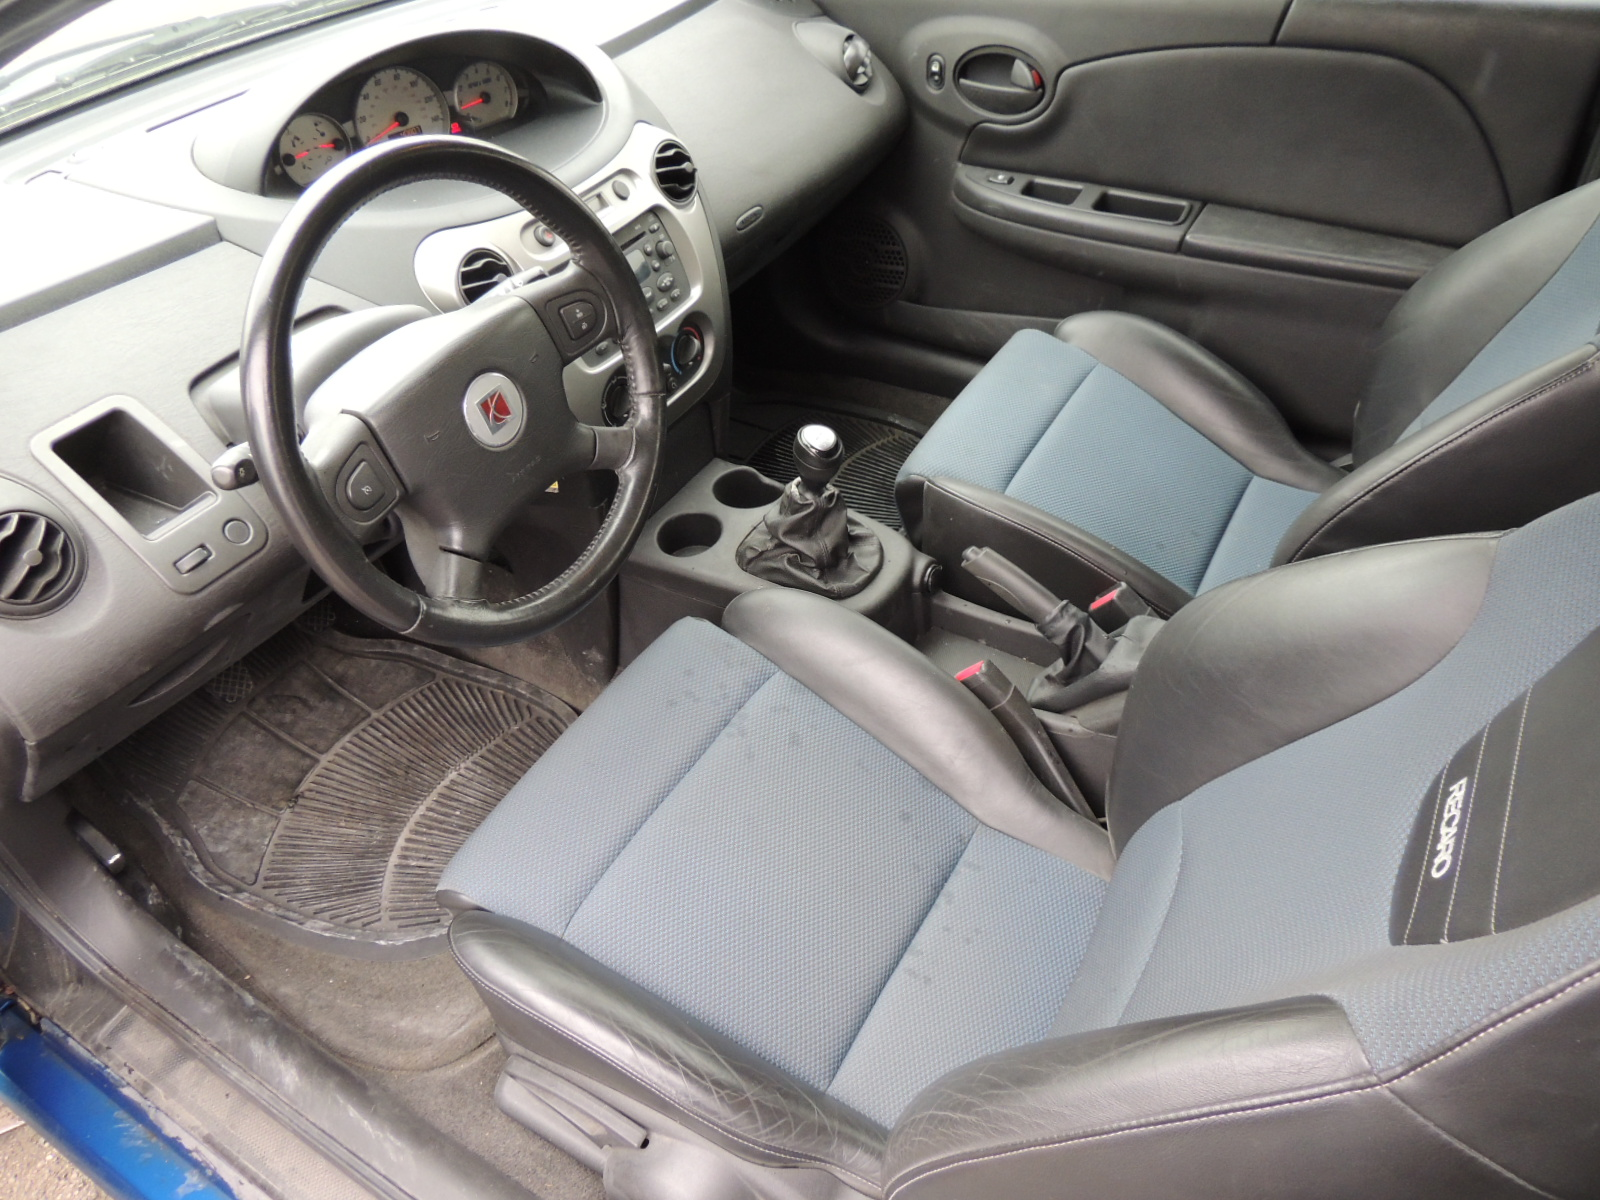 Salvage rebuildable repairables saturn ion for sale stock number 10784 year 2004 make saturn vanachro Images